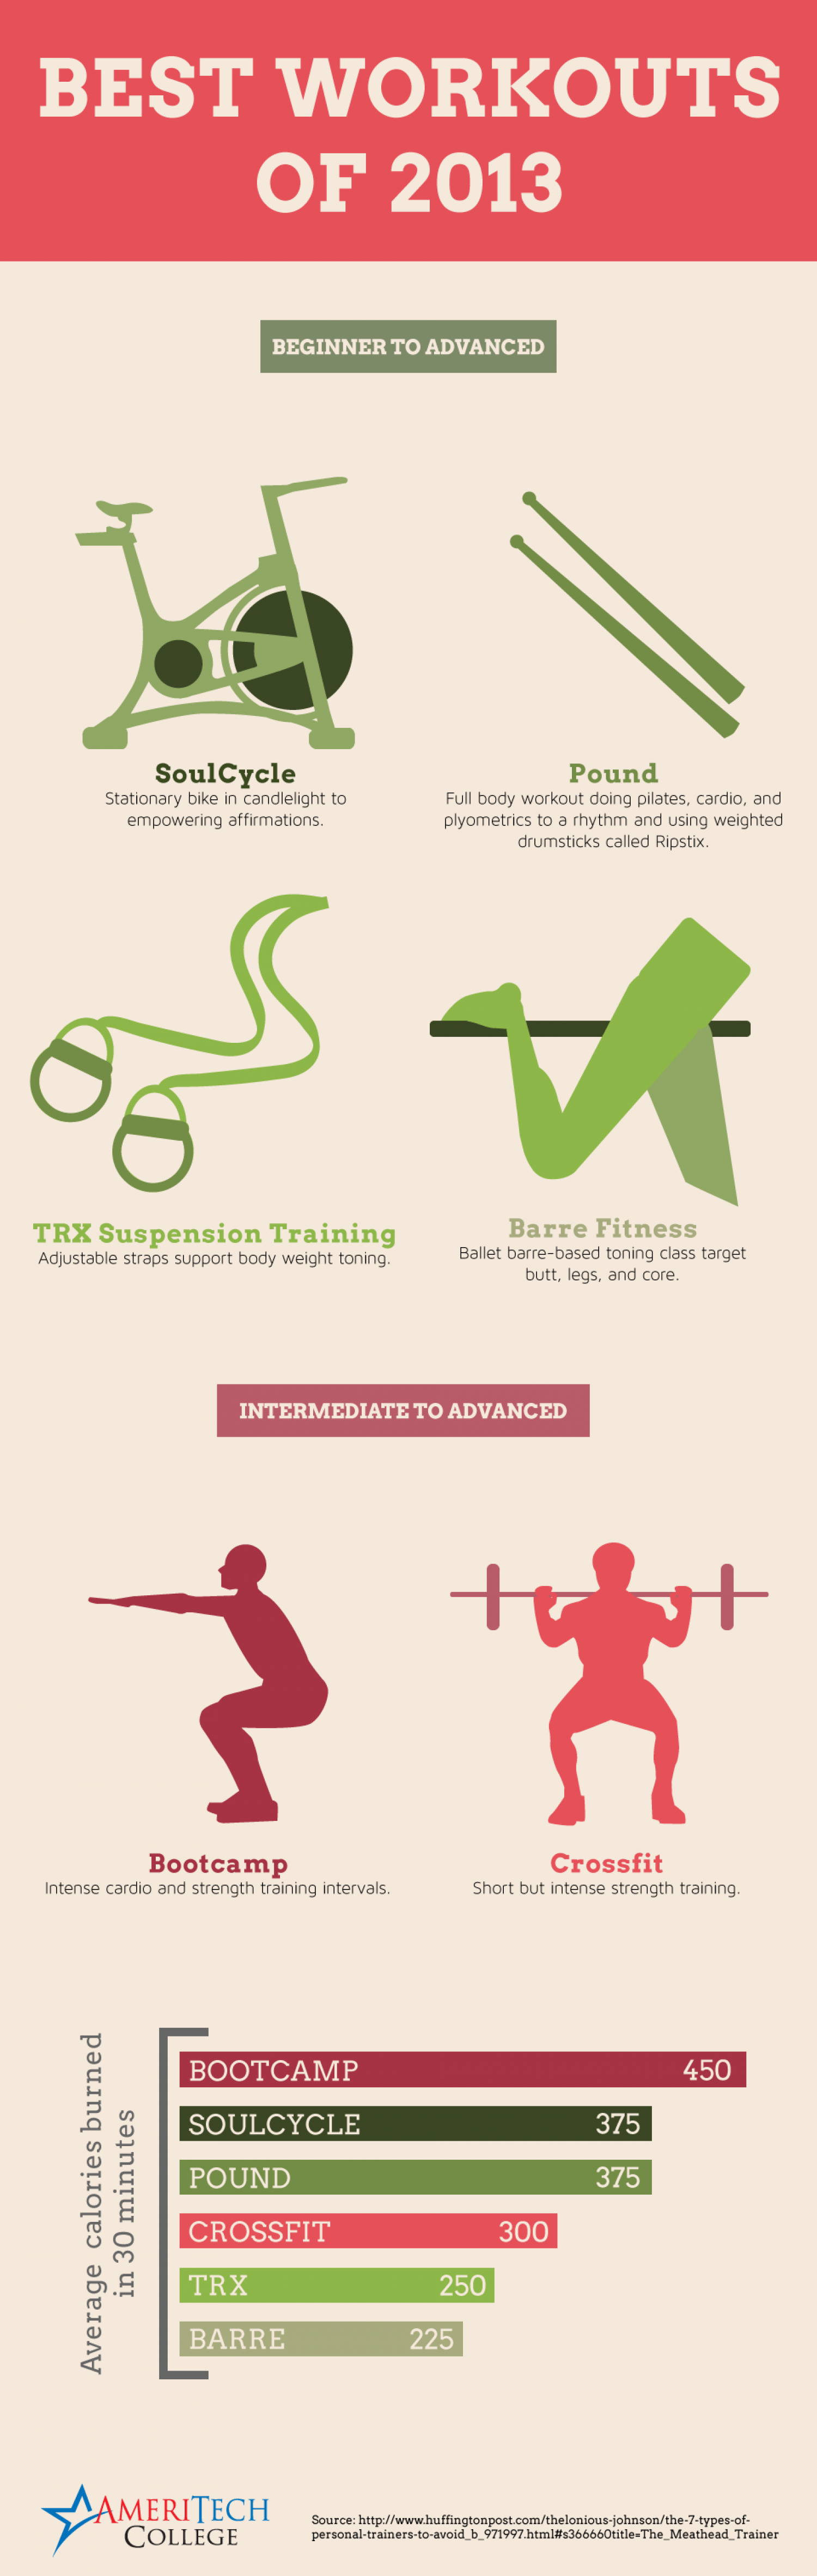 Best Workouts of 2013 Infographic